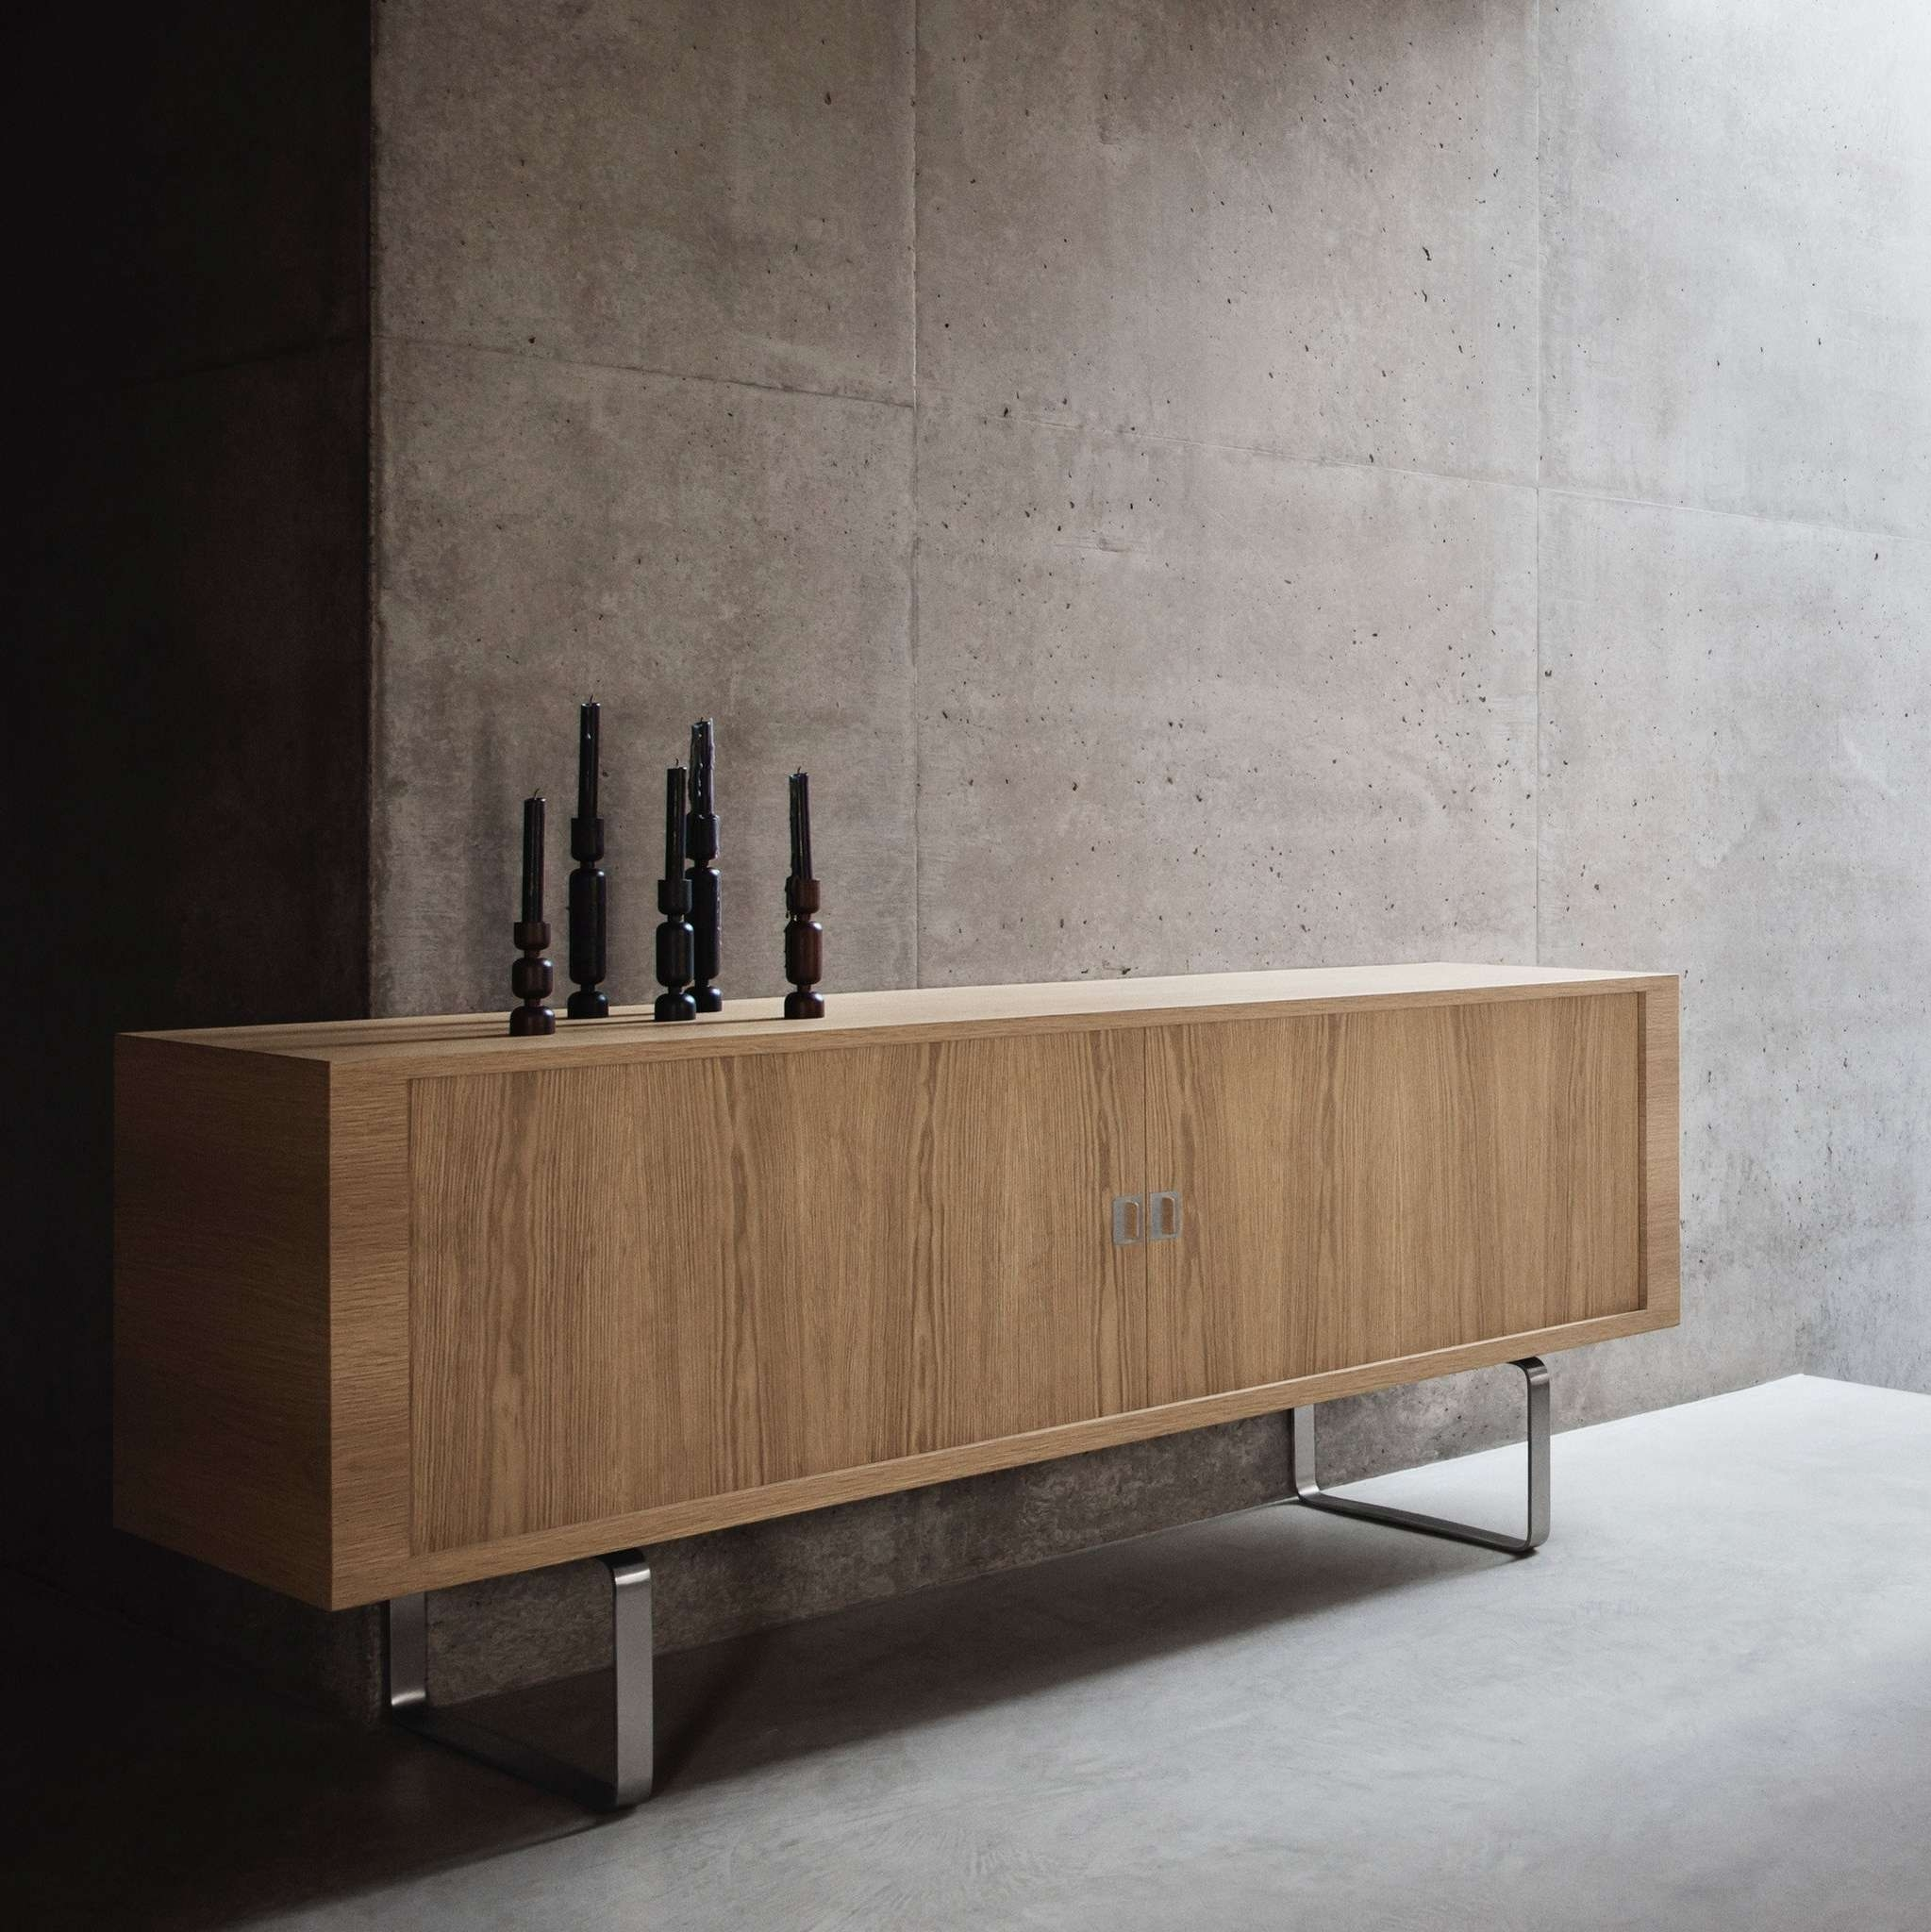 Ch825 Credenza Sideboardcarl Hansen & Søn — Haus® Pertaining To Credenza Sideboards (View 4 of 20)